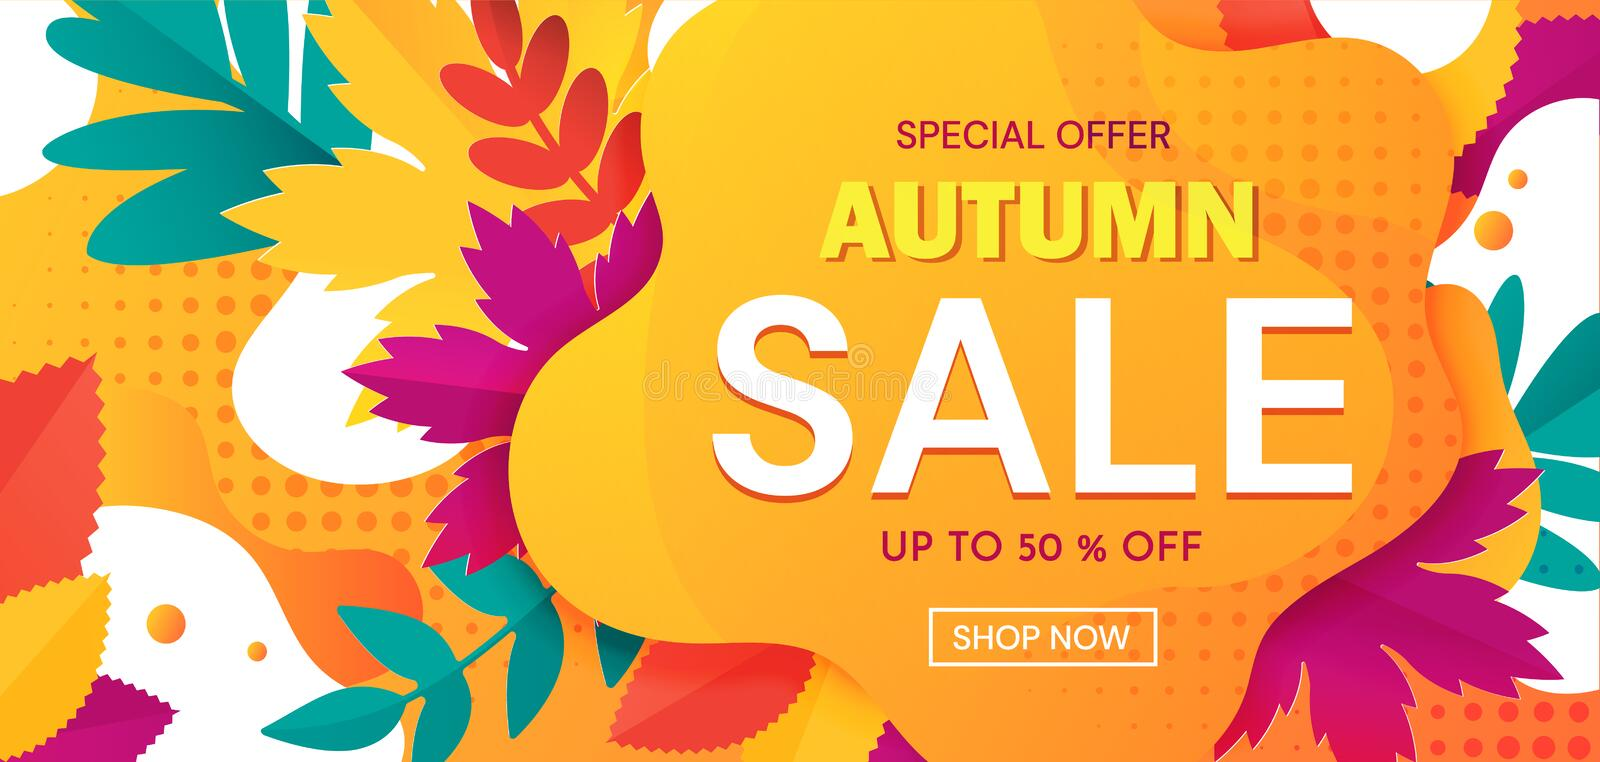 Colorful banner advertising an Autumn Sale with 50 percent discounts and special offers with text on abstract orange vector illustration